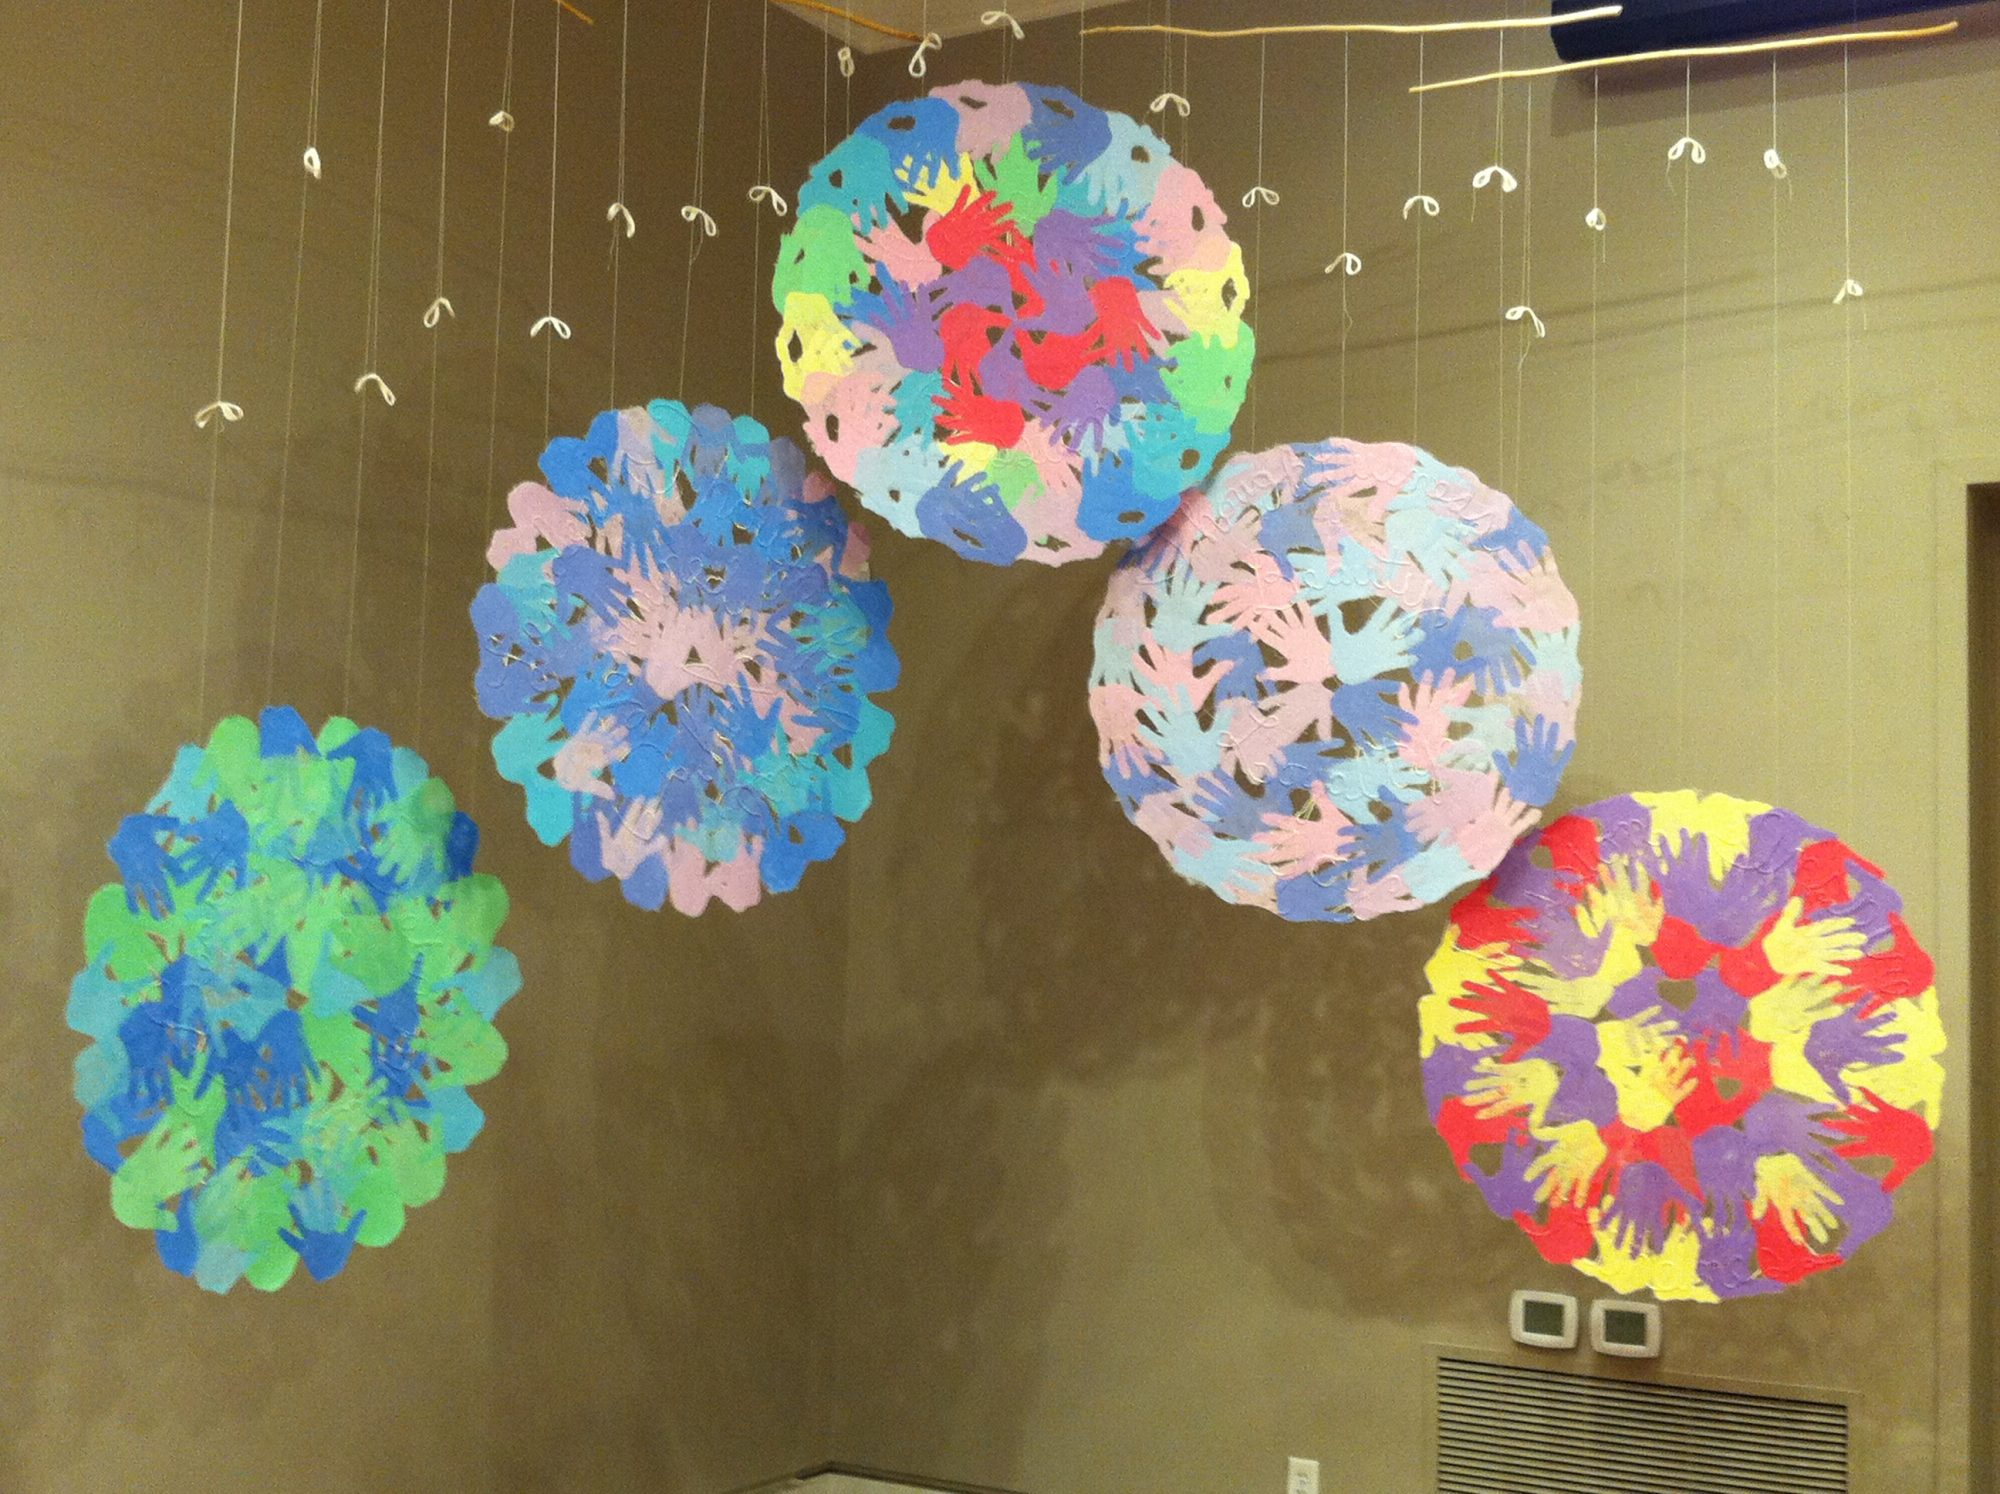 large round handmade paper pages suspended from ceiling